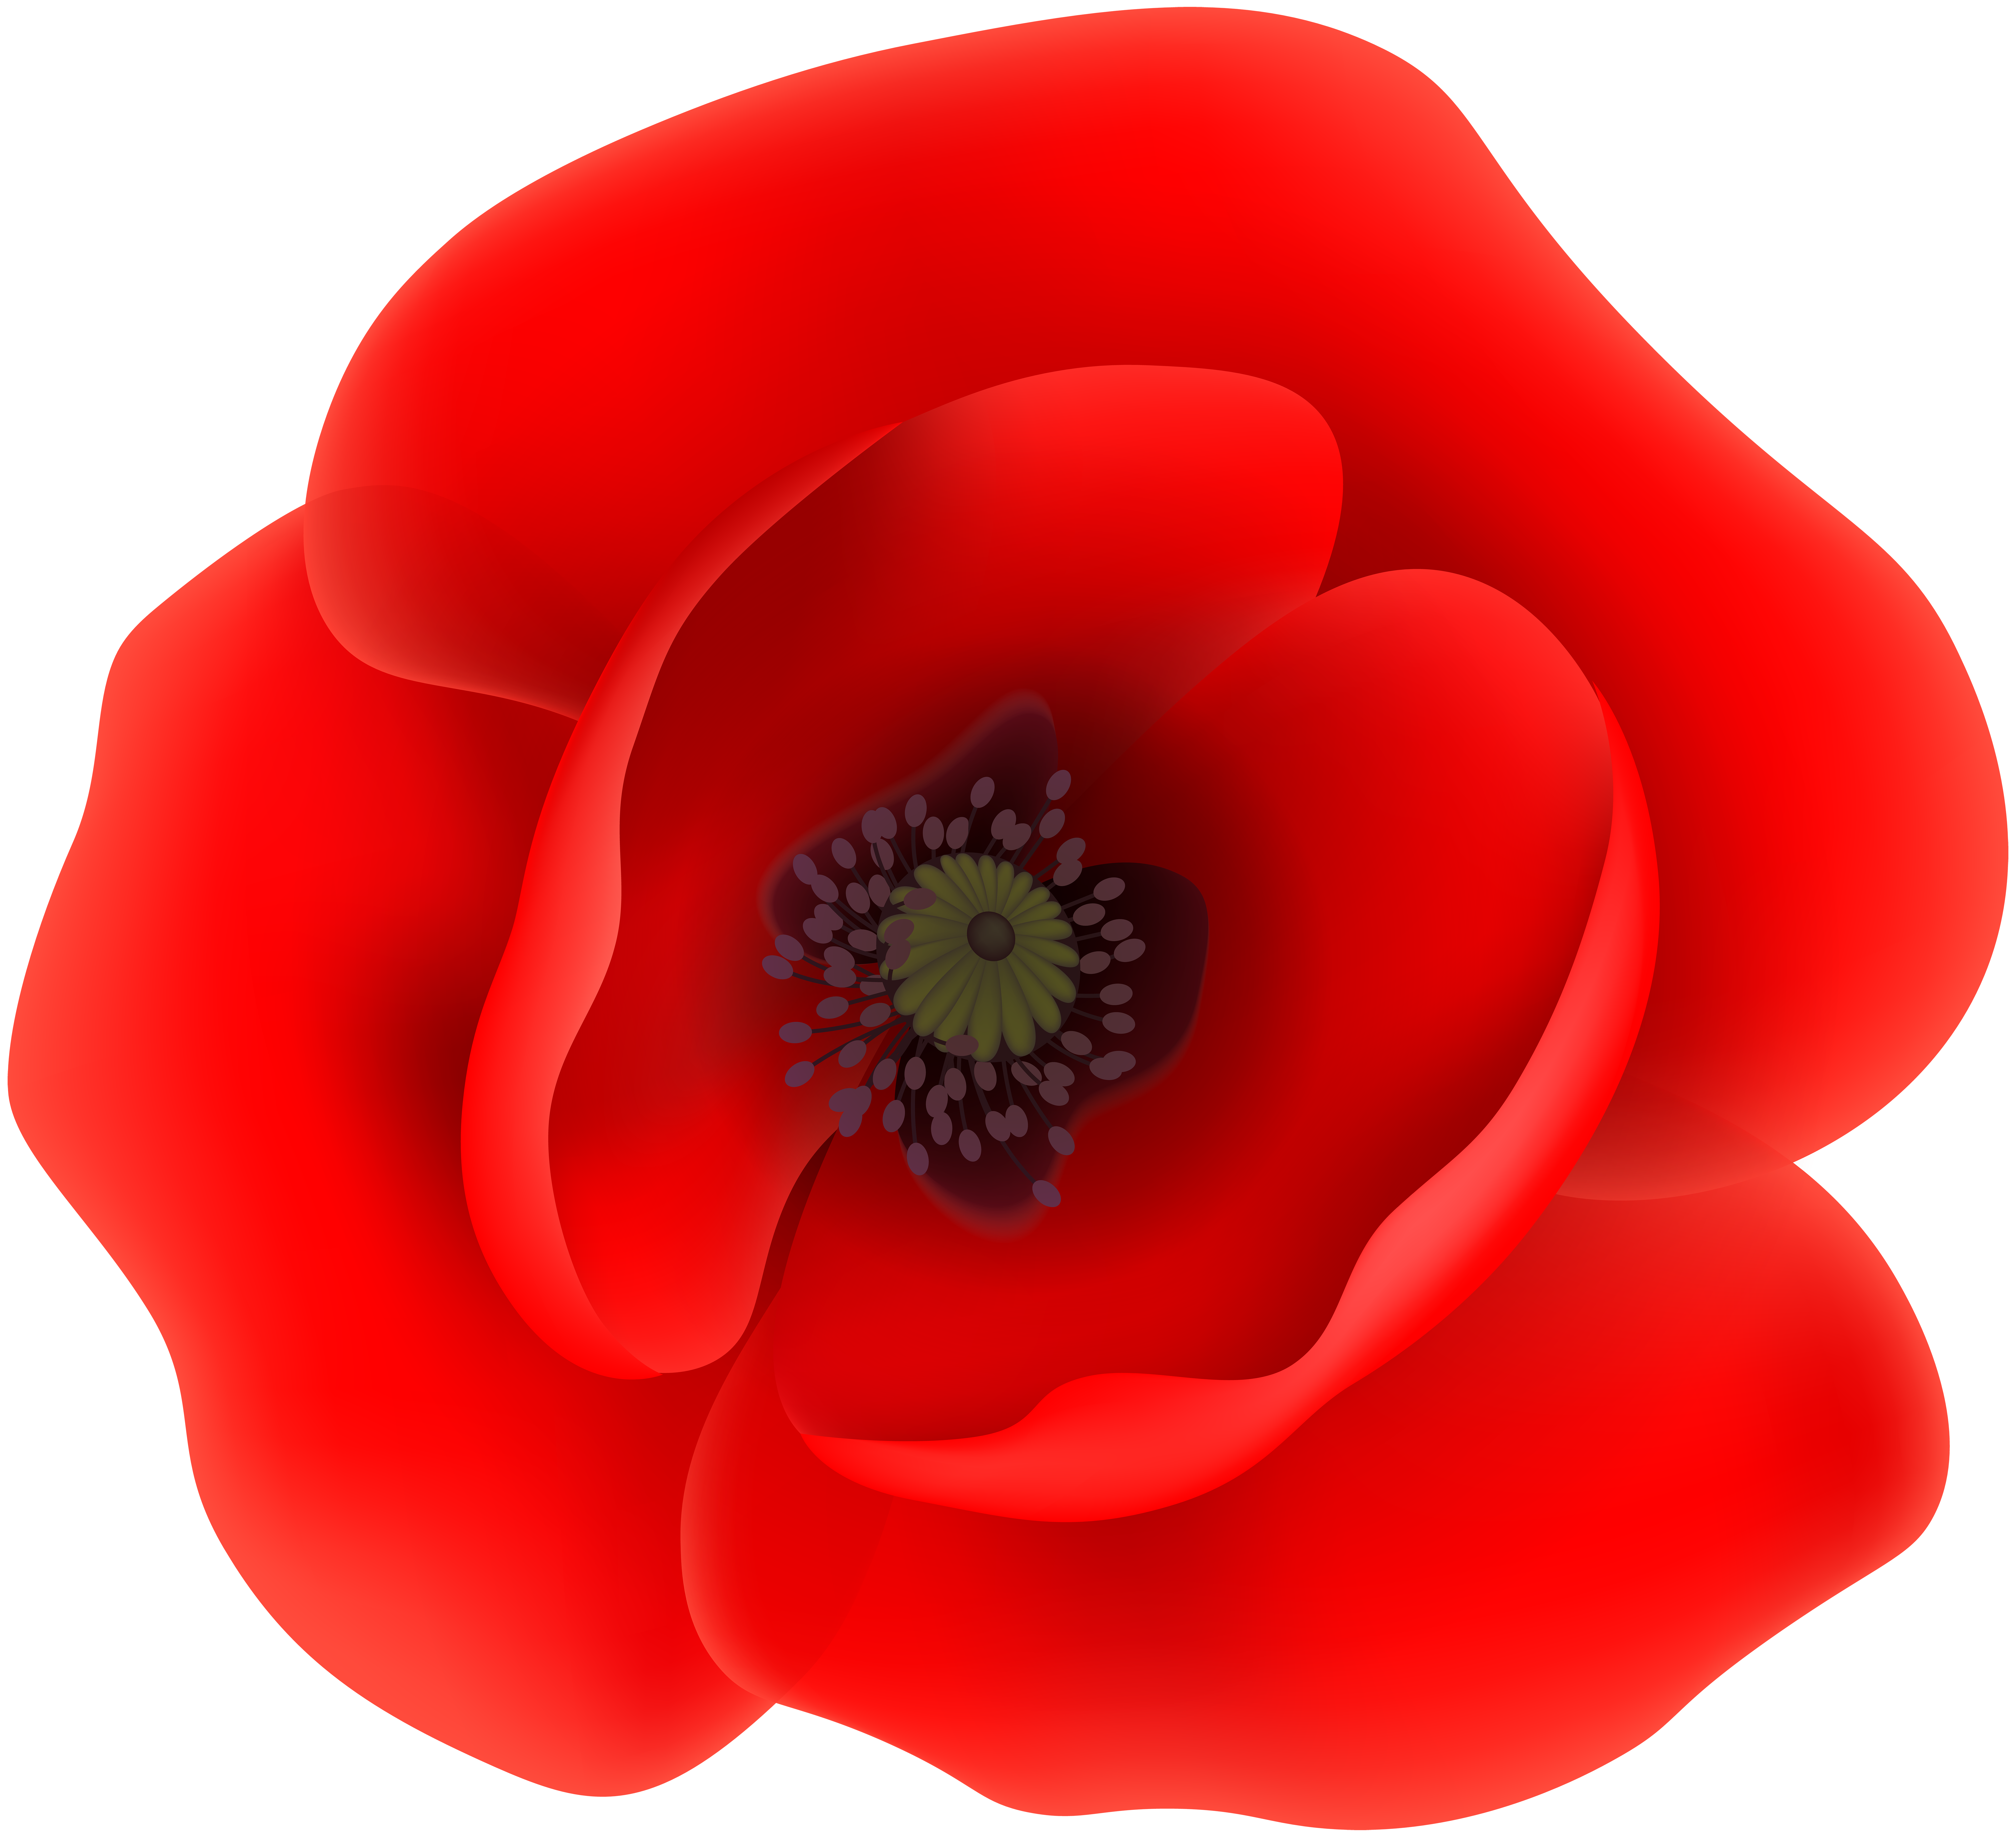 Poppy Flower Clip Art Transparent Image.